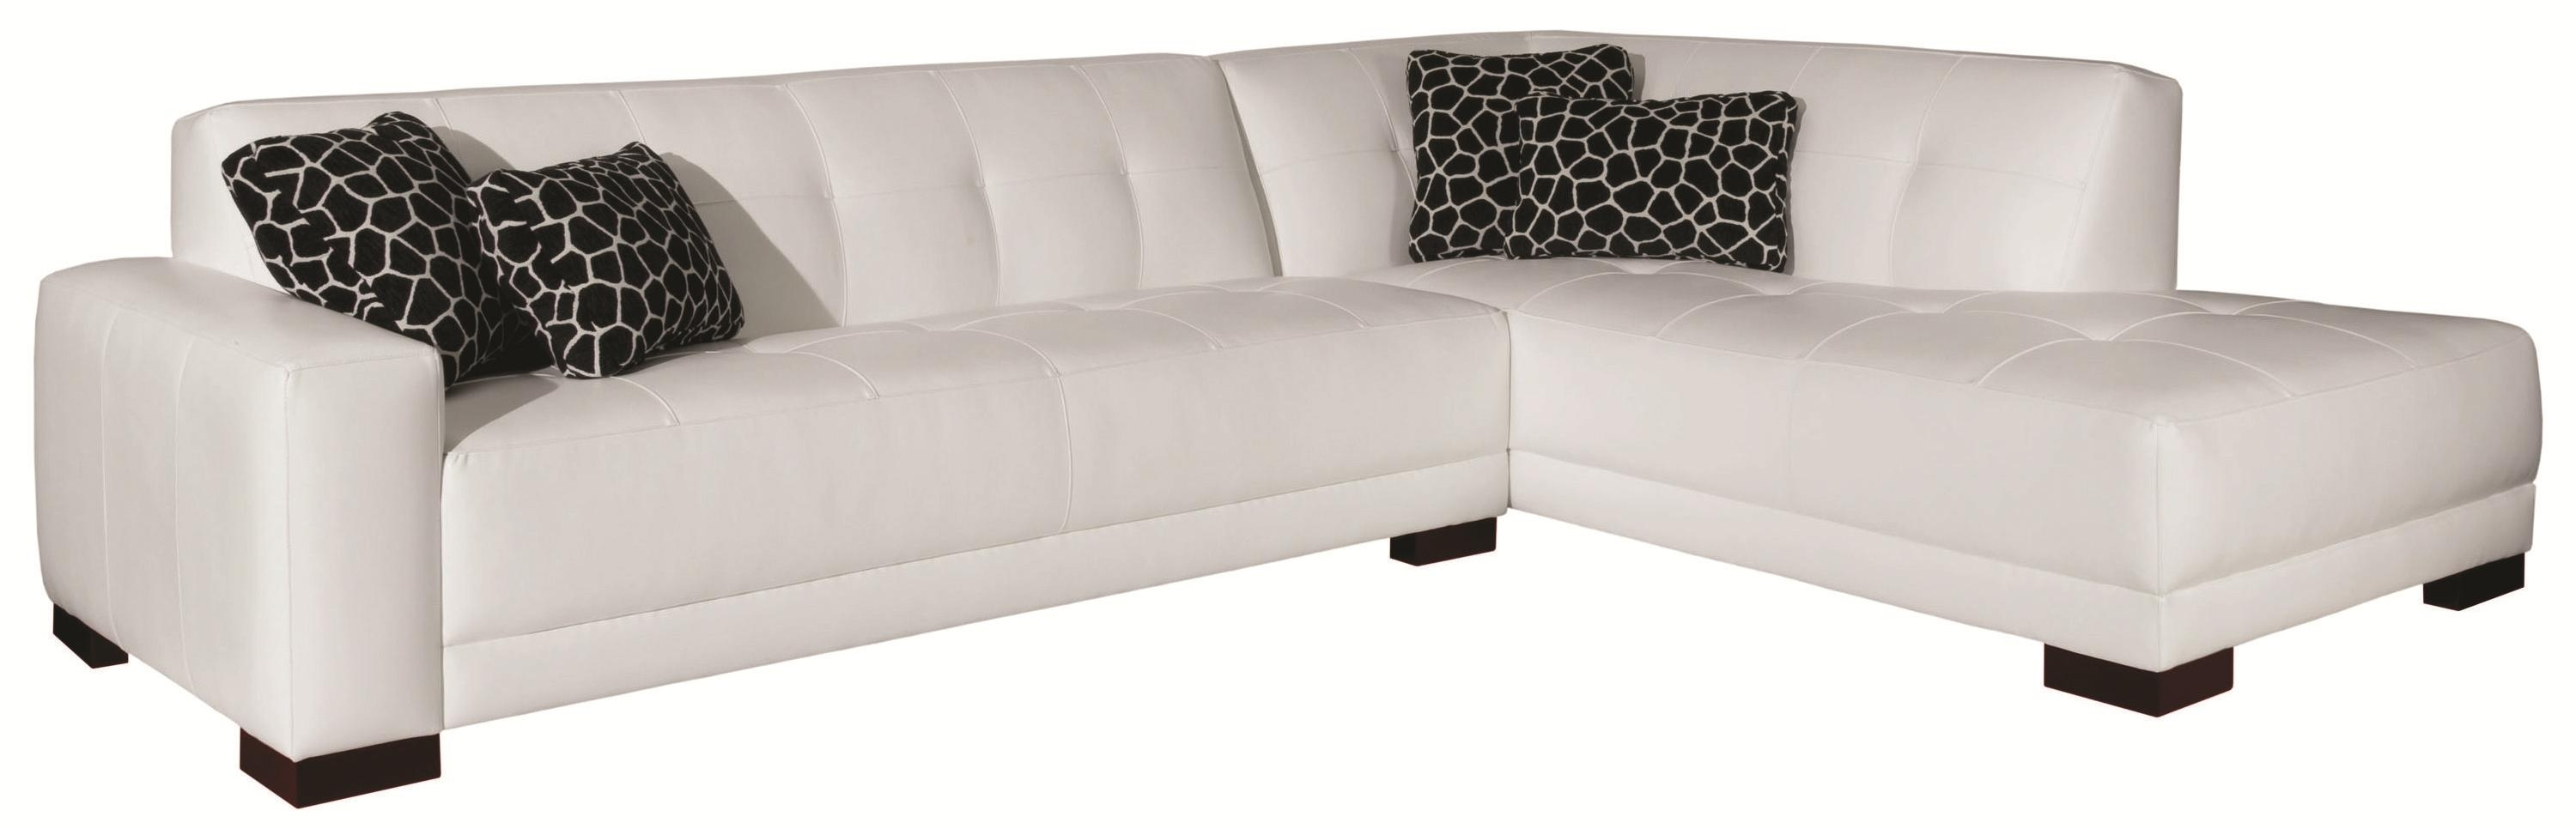 Broyhill Sectional Sofa | Aifaresidency For Sectional Sofas At Broyhill (Image 6 of 10)